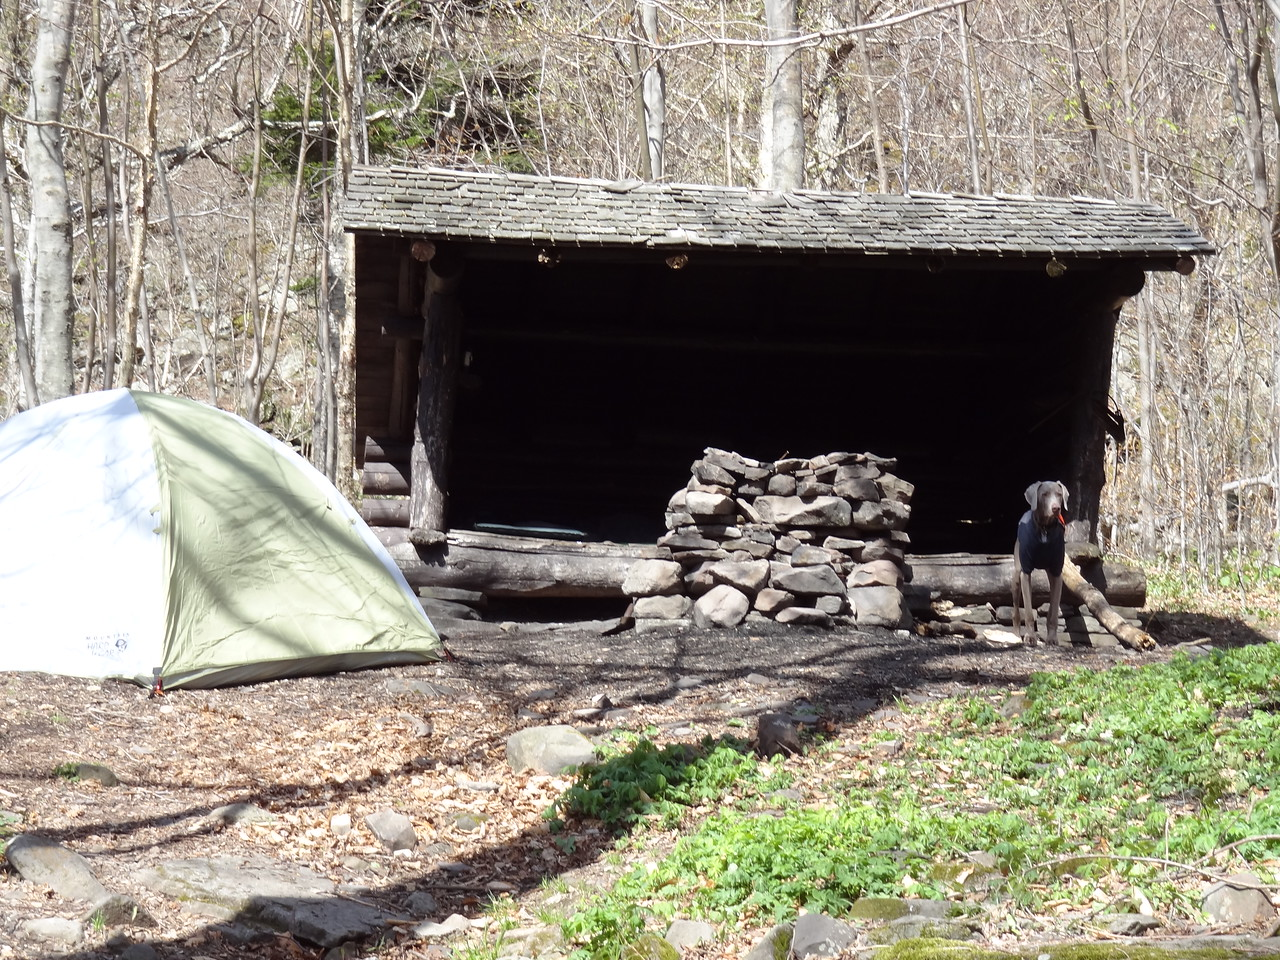 "This was our home for the evening. Grandpa, son and granddaughter shared the lean-to with Gunter and I, with the married couple in the tent. You are allowed to build camp fires in the Catskills but the wind was so high in the evening, I was afraid I would start the woods on fire: Like my two next-door neighbors, Tim O'Hara and Andy Moynahan, did in my home town of Vestal, NY when we were kids. <br /> And not to toot my own horn but Andy's little sister Kathryn had a crush on me. Kathryn went on to use her middle name Bridgett when she began acting. That's right Tom Brady & McG, she liked me first. Oh, she probably still Googles me now and then, to see what I am doing. Sorry Kathryn but this guy in a Country Guy, no big city lights for me. Hollywood just won't work. We are like two ships passing in the night. Move on, my dear. We will always have that special summer in 1980: me, Tim and Andy in Cub Scouts, you had just lost your two front teeth and couldn't whistle. All you could do was yell ""hubba hubba"" when I walked by with my kneehigh tubes socks with stripes matching my wristbands ."